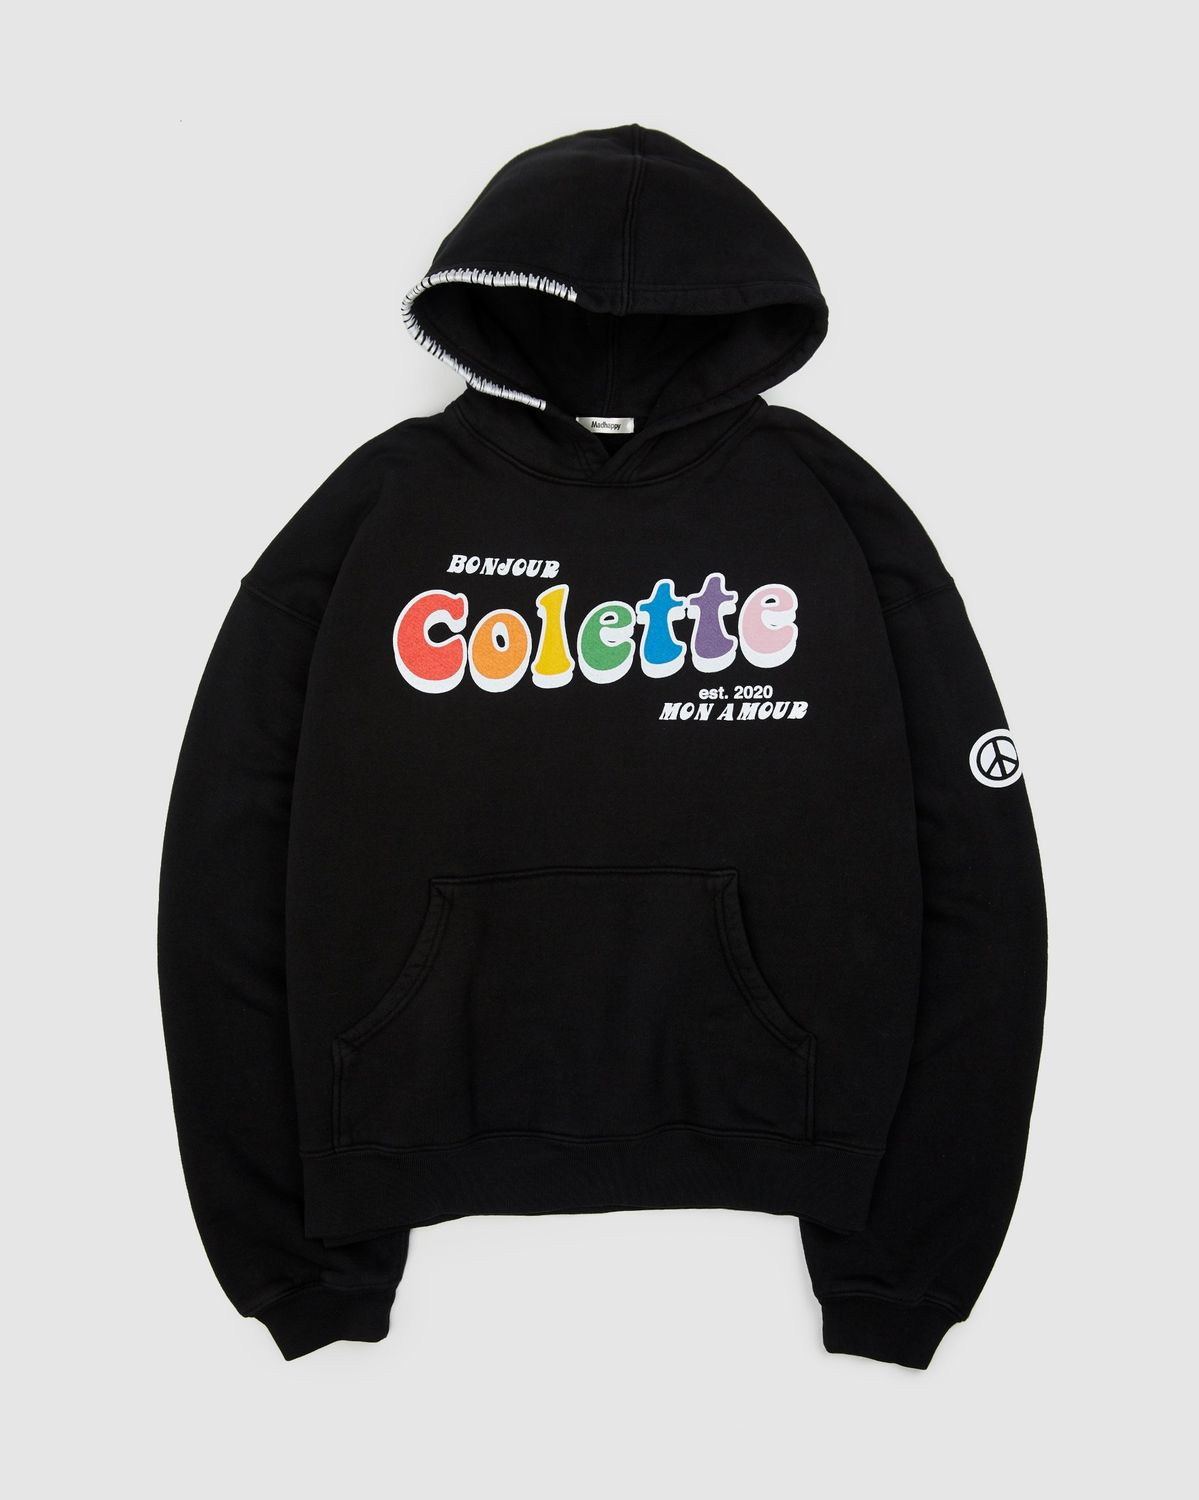 Madhappy x colette Mon Amour - Hoodie Black - Image 1